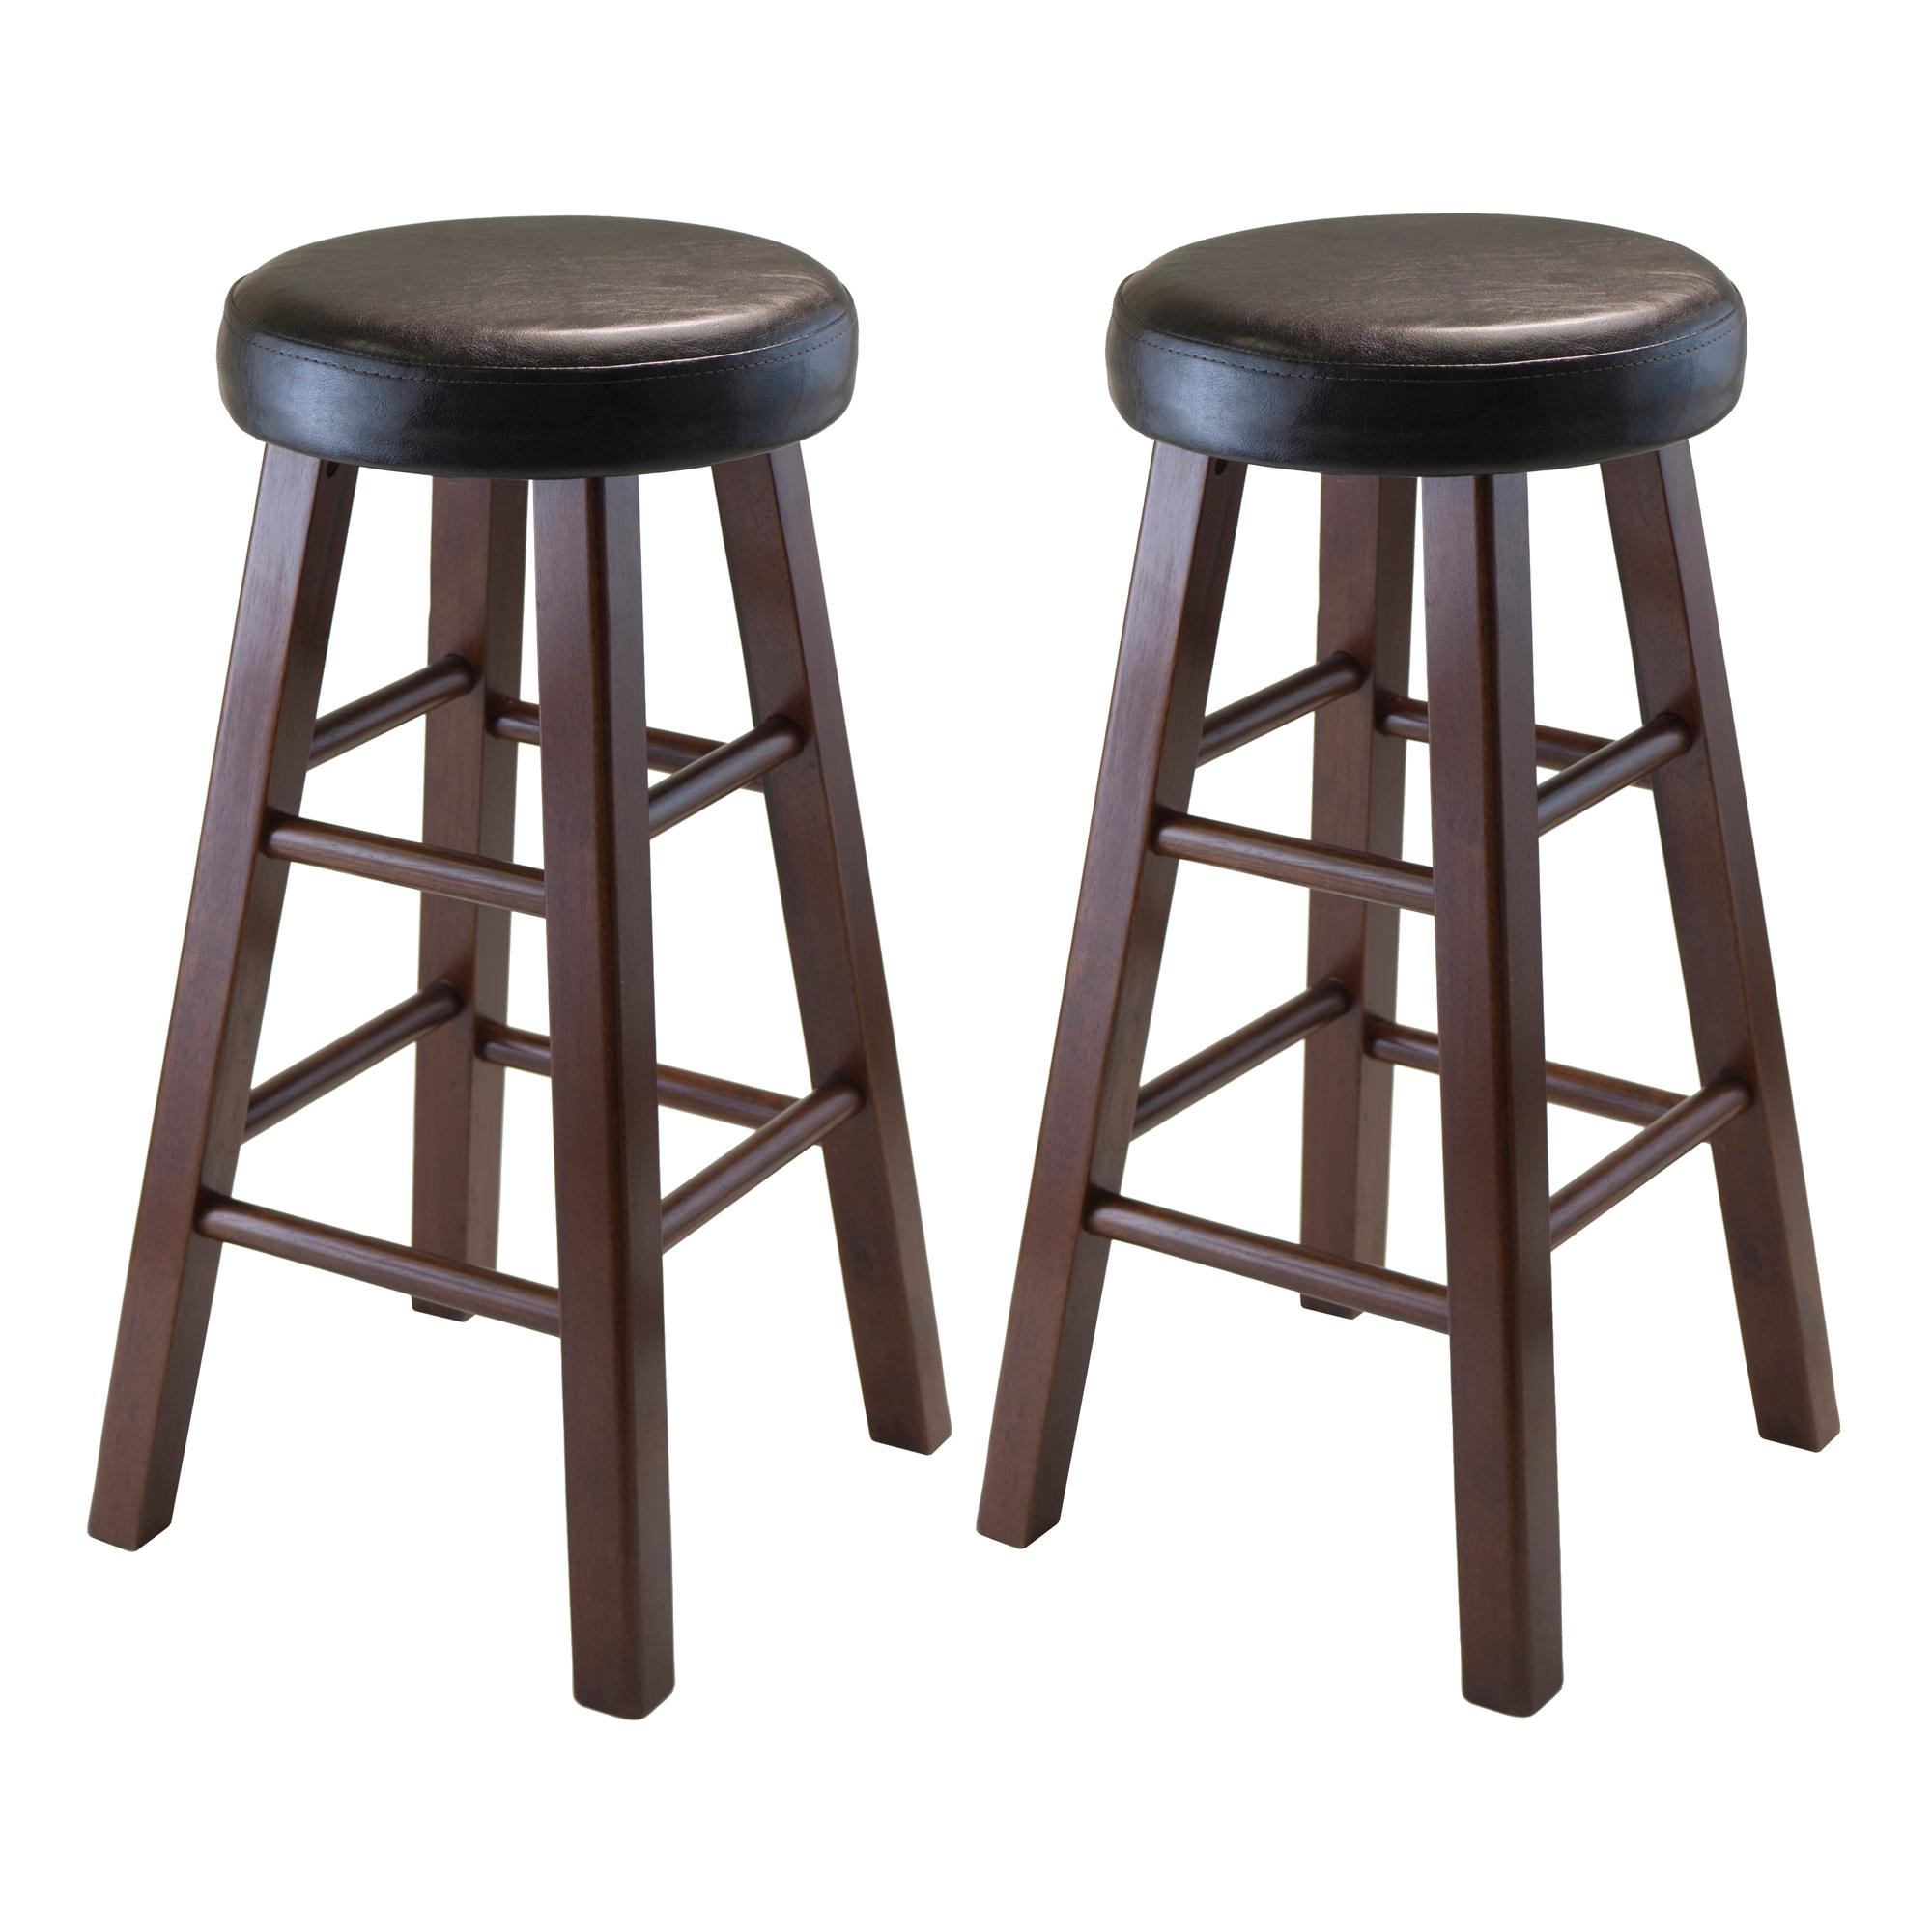 Superb img of  stool beautiful marta comes with 2 assembled counter stools with round with #3E2F2C color and 2000x2000 pixels